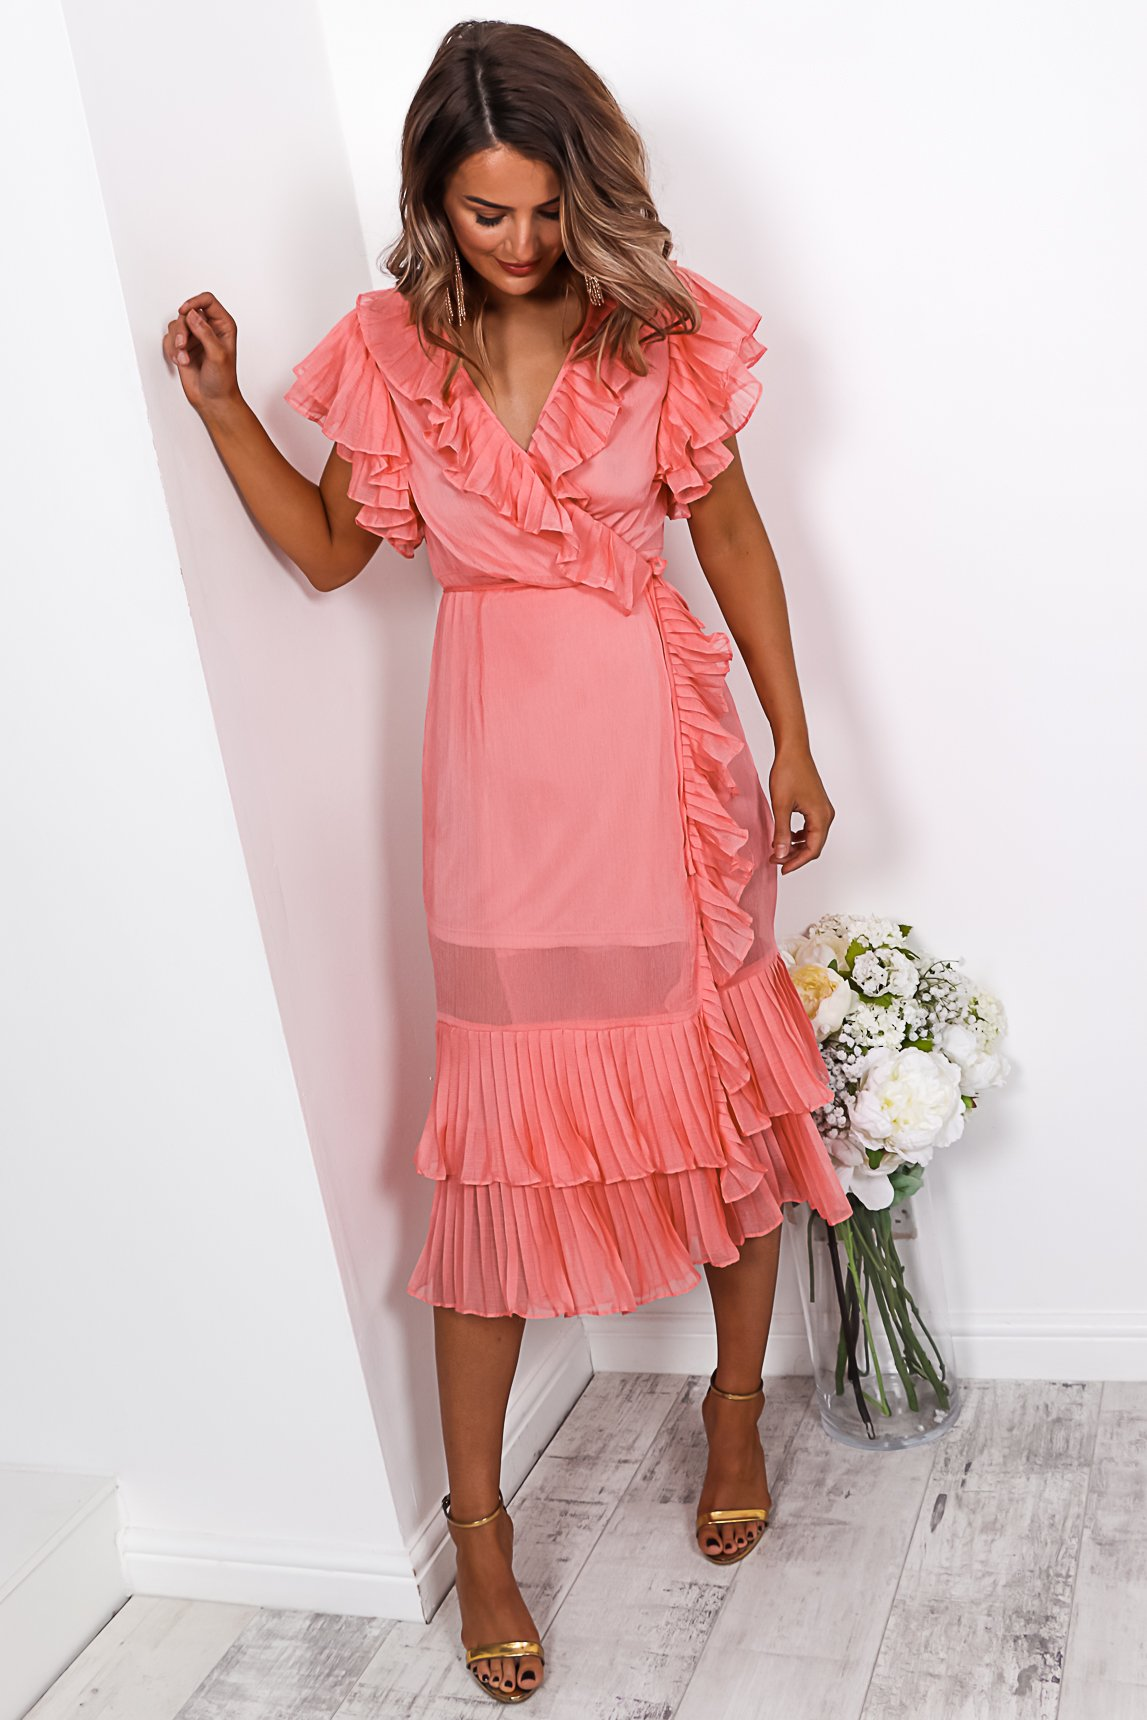 Baby Doll - Midi Dress In PINK - DLSB